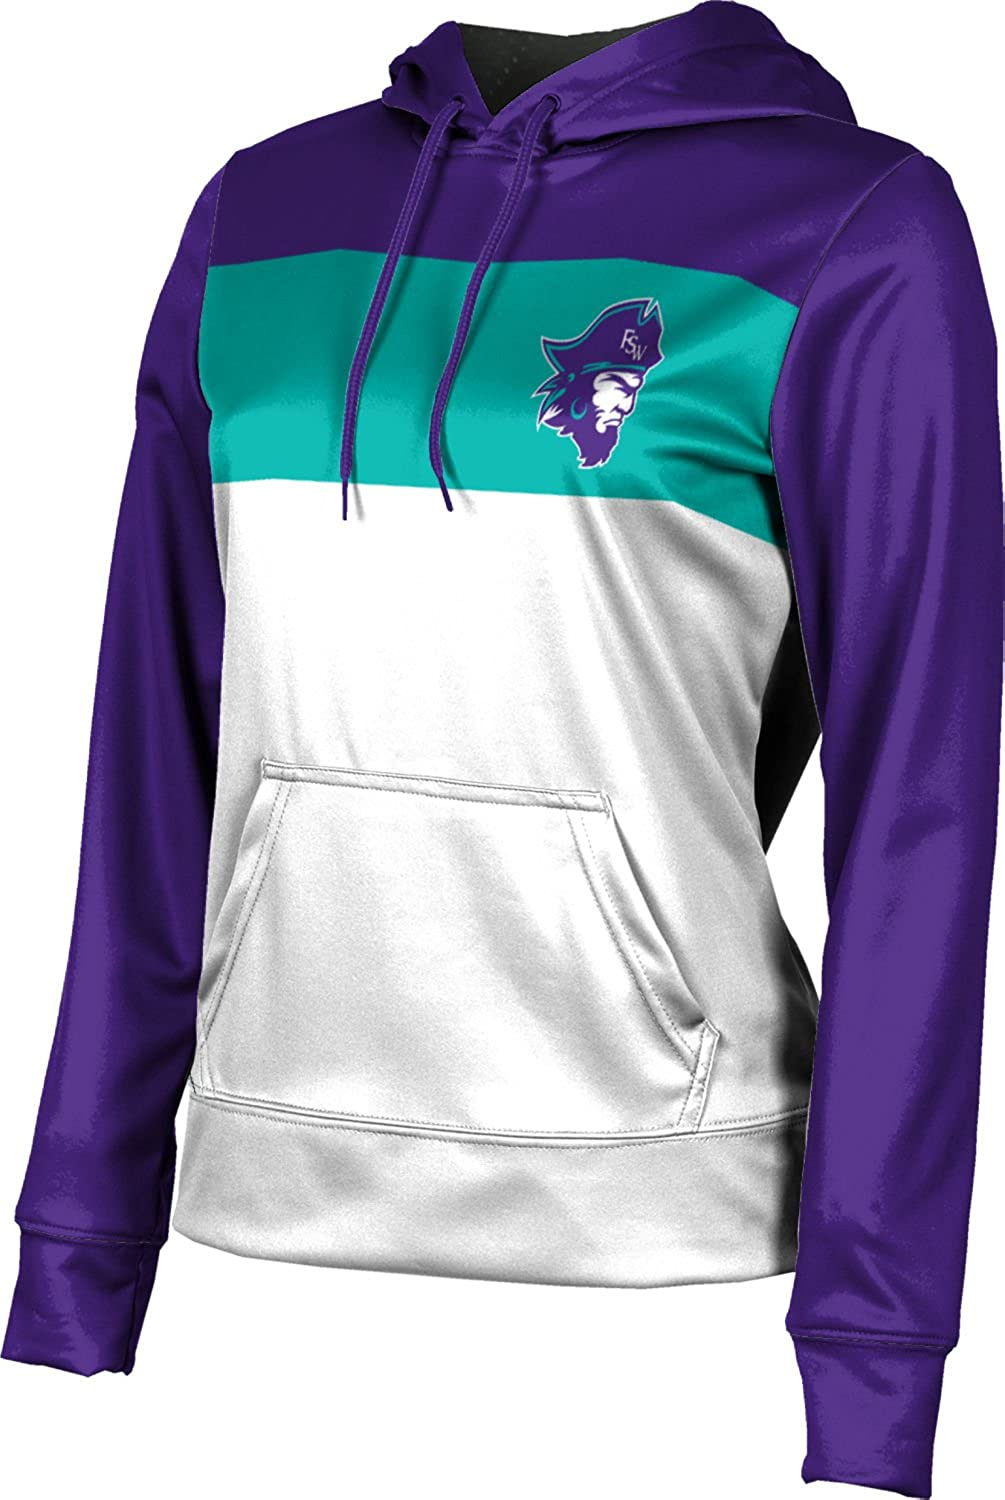 Florida Southwestern Sale special price State College Women's Scho Hoodie Pullover Max 56% OFF